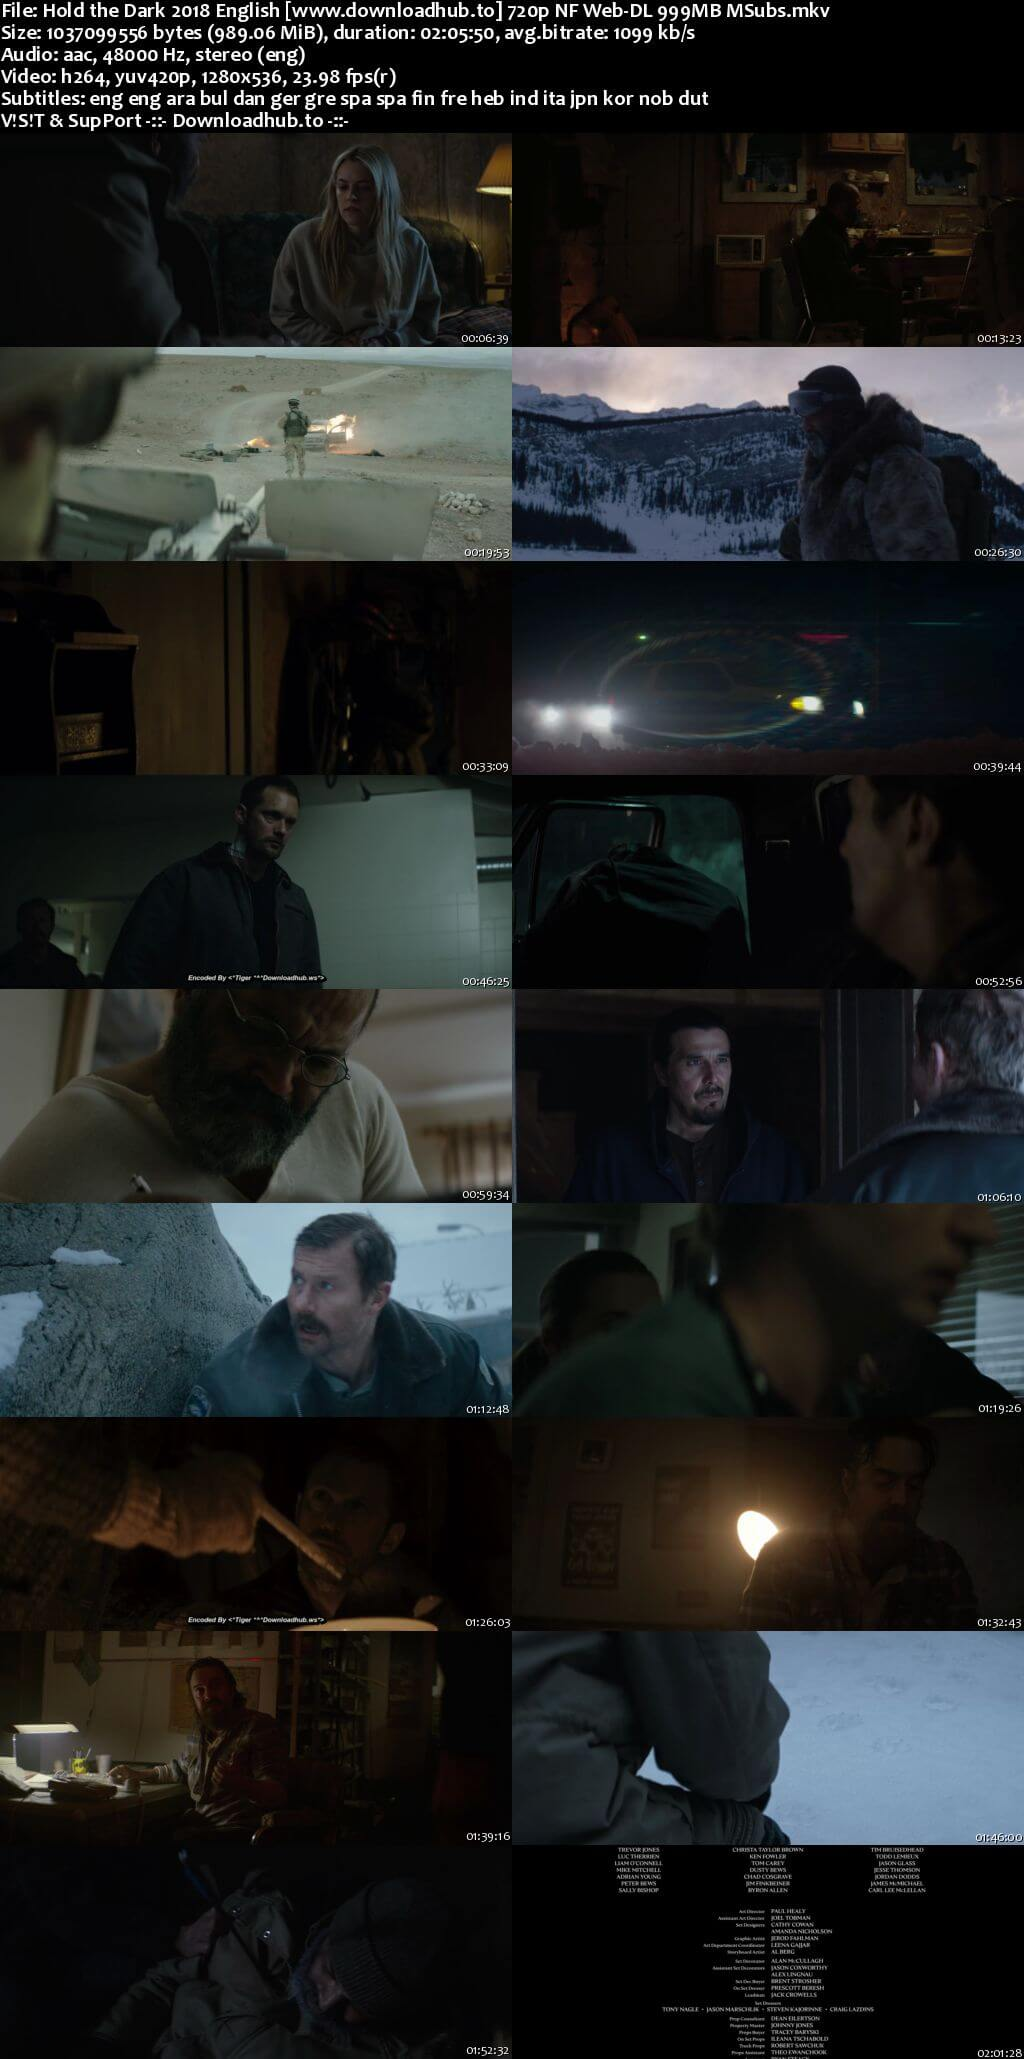 Hold the Dark 2018 English 720p NF Web-DL 999MB MSubs